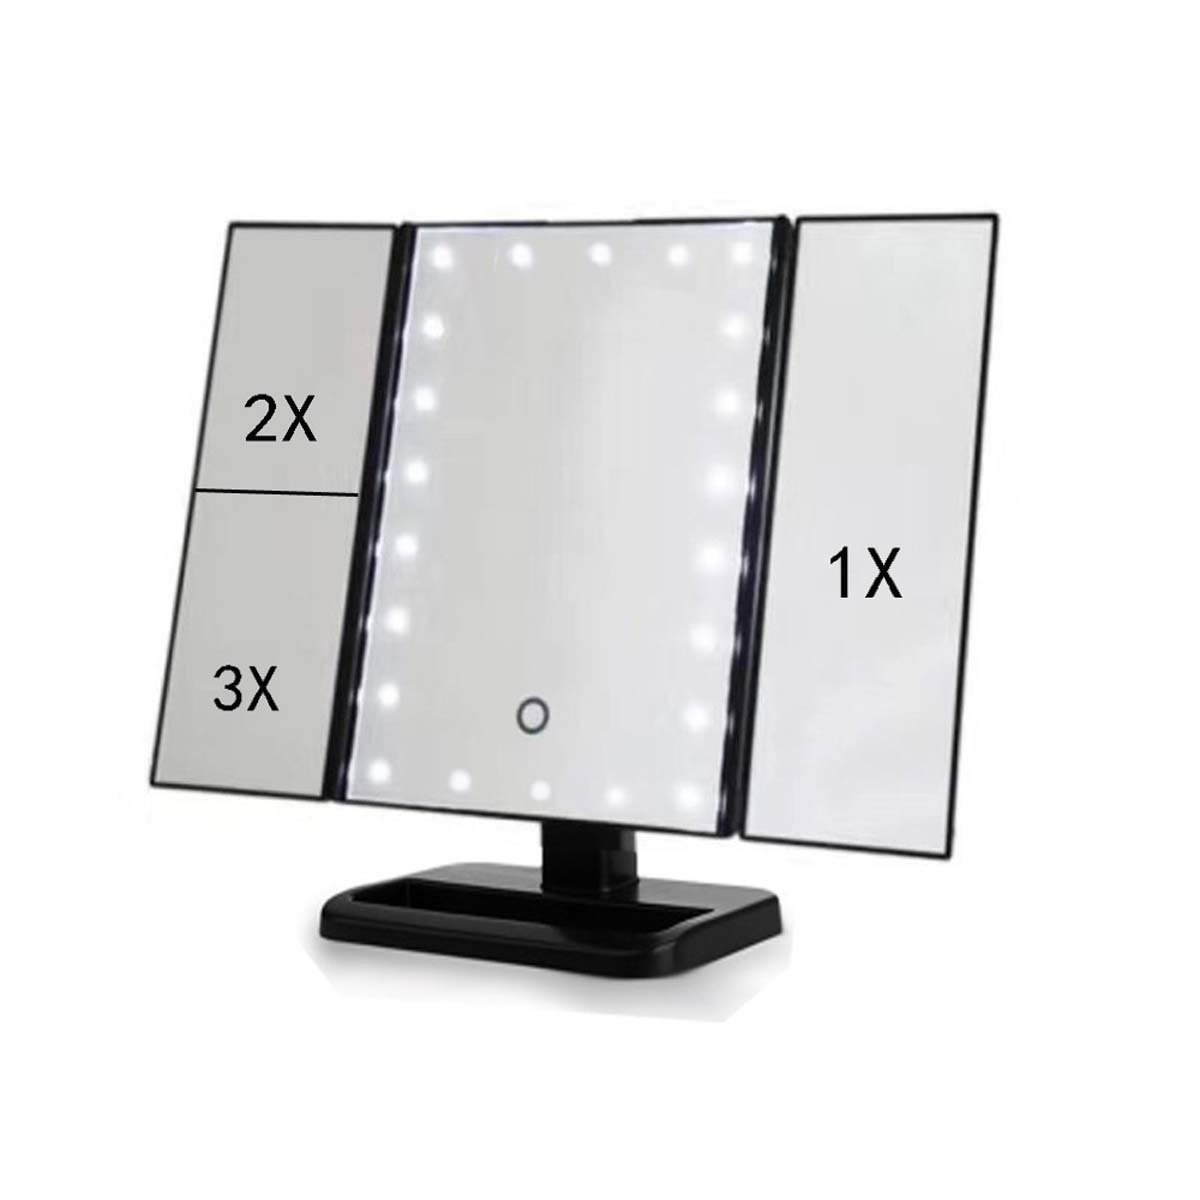 J&A New LED Table Top Storage Vanity Mirror, Tri-Fold Illuminated Vanity Mirrorwith 3x/2x Magnification, Dimmable Light, Touch Screen, 180° Adjustable Rotation Mirror For Bathroom